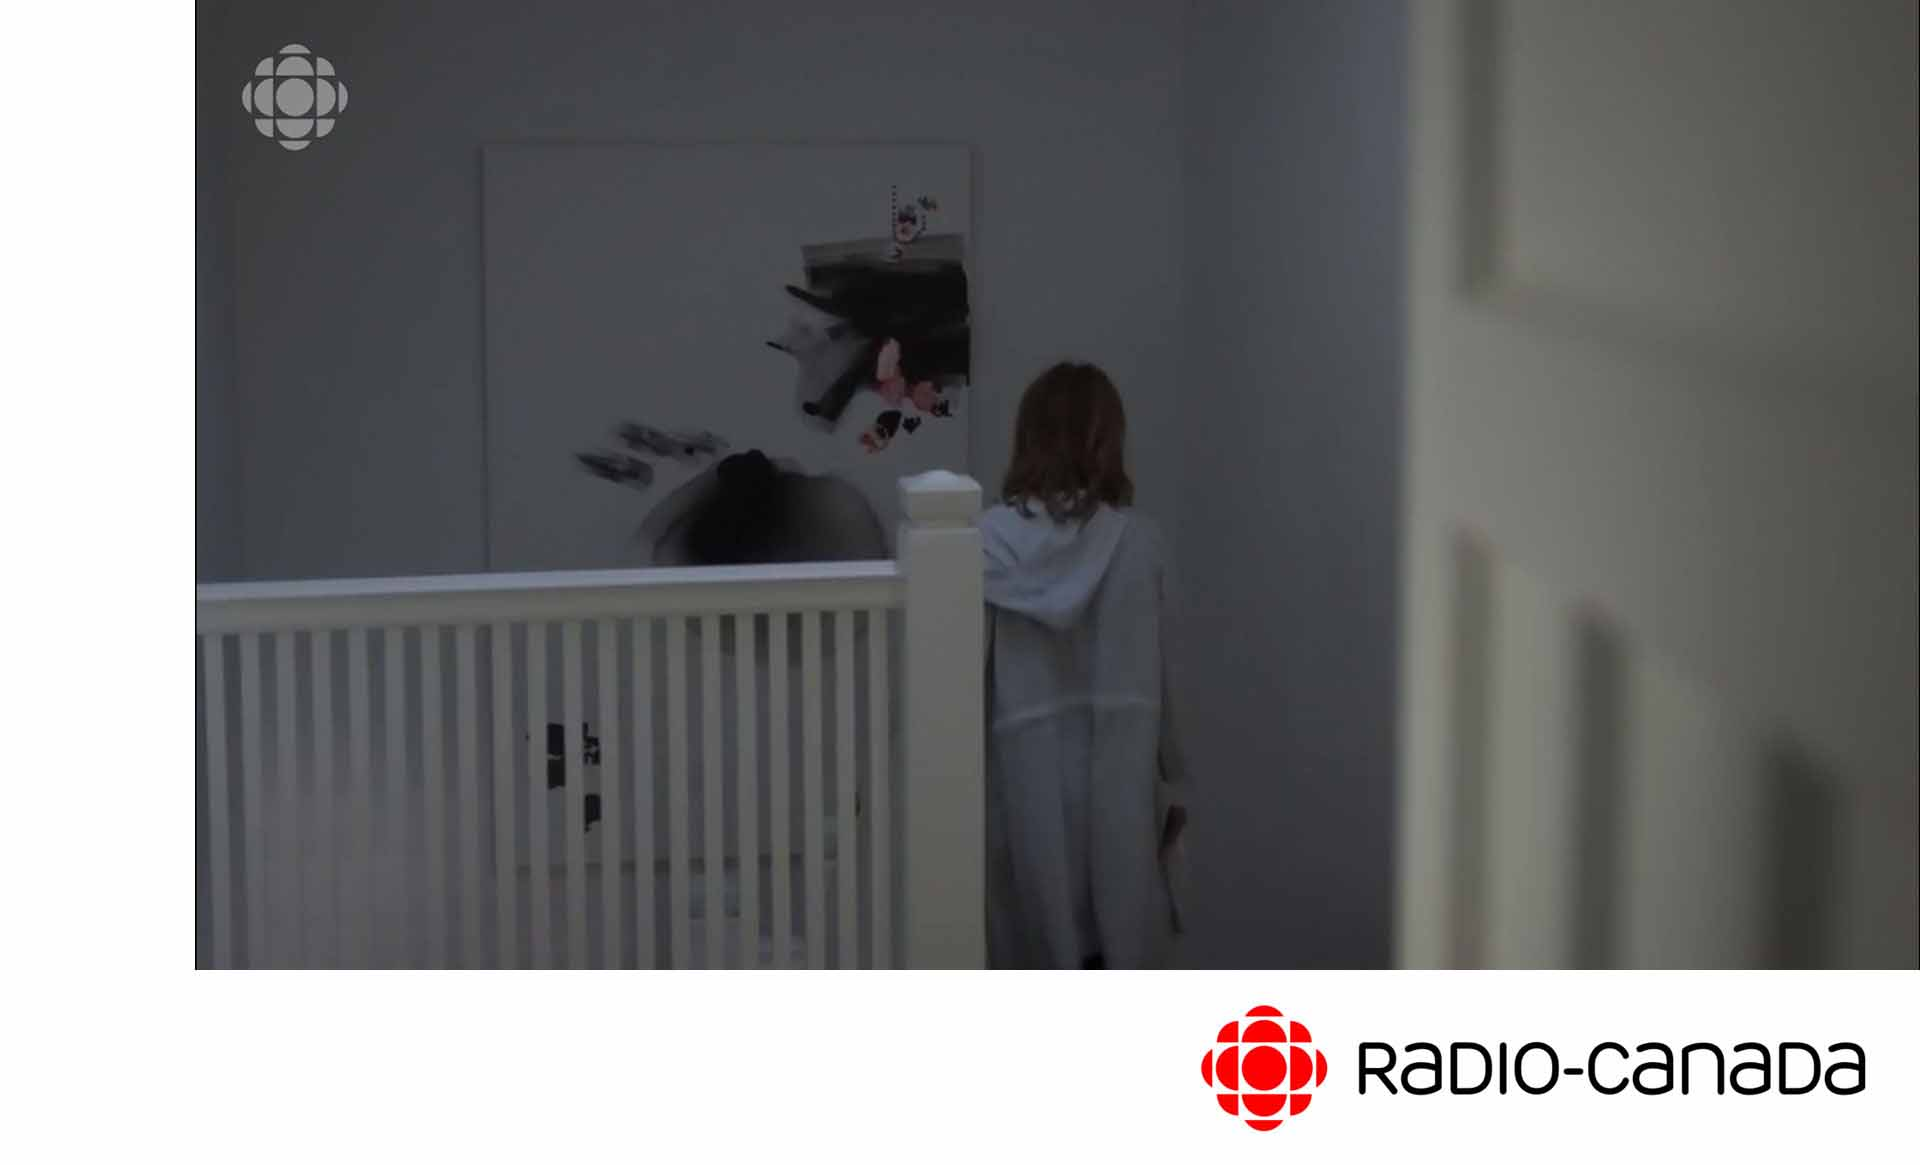 A painting by Anne-Marie Chagnon on TV – Ruptures aired on Radio-Canada